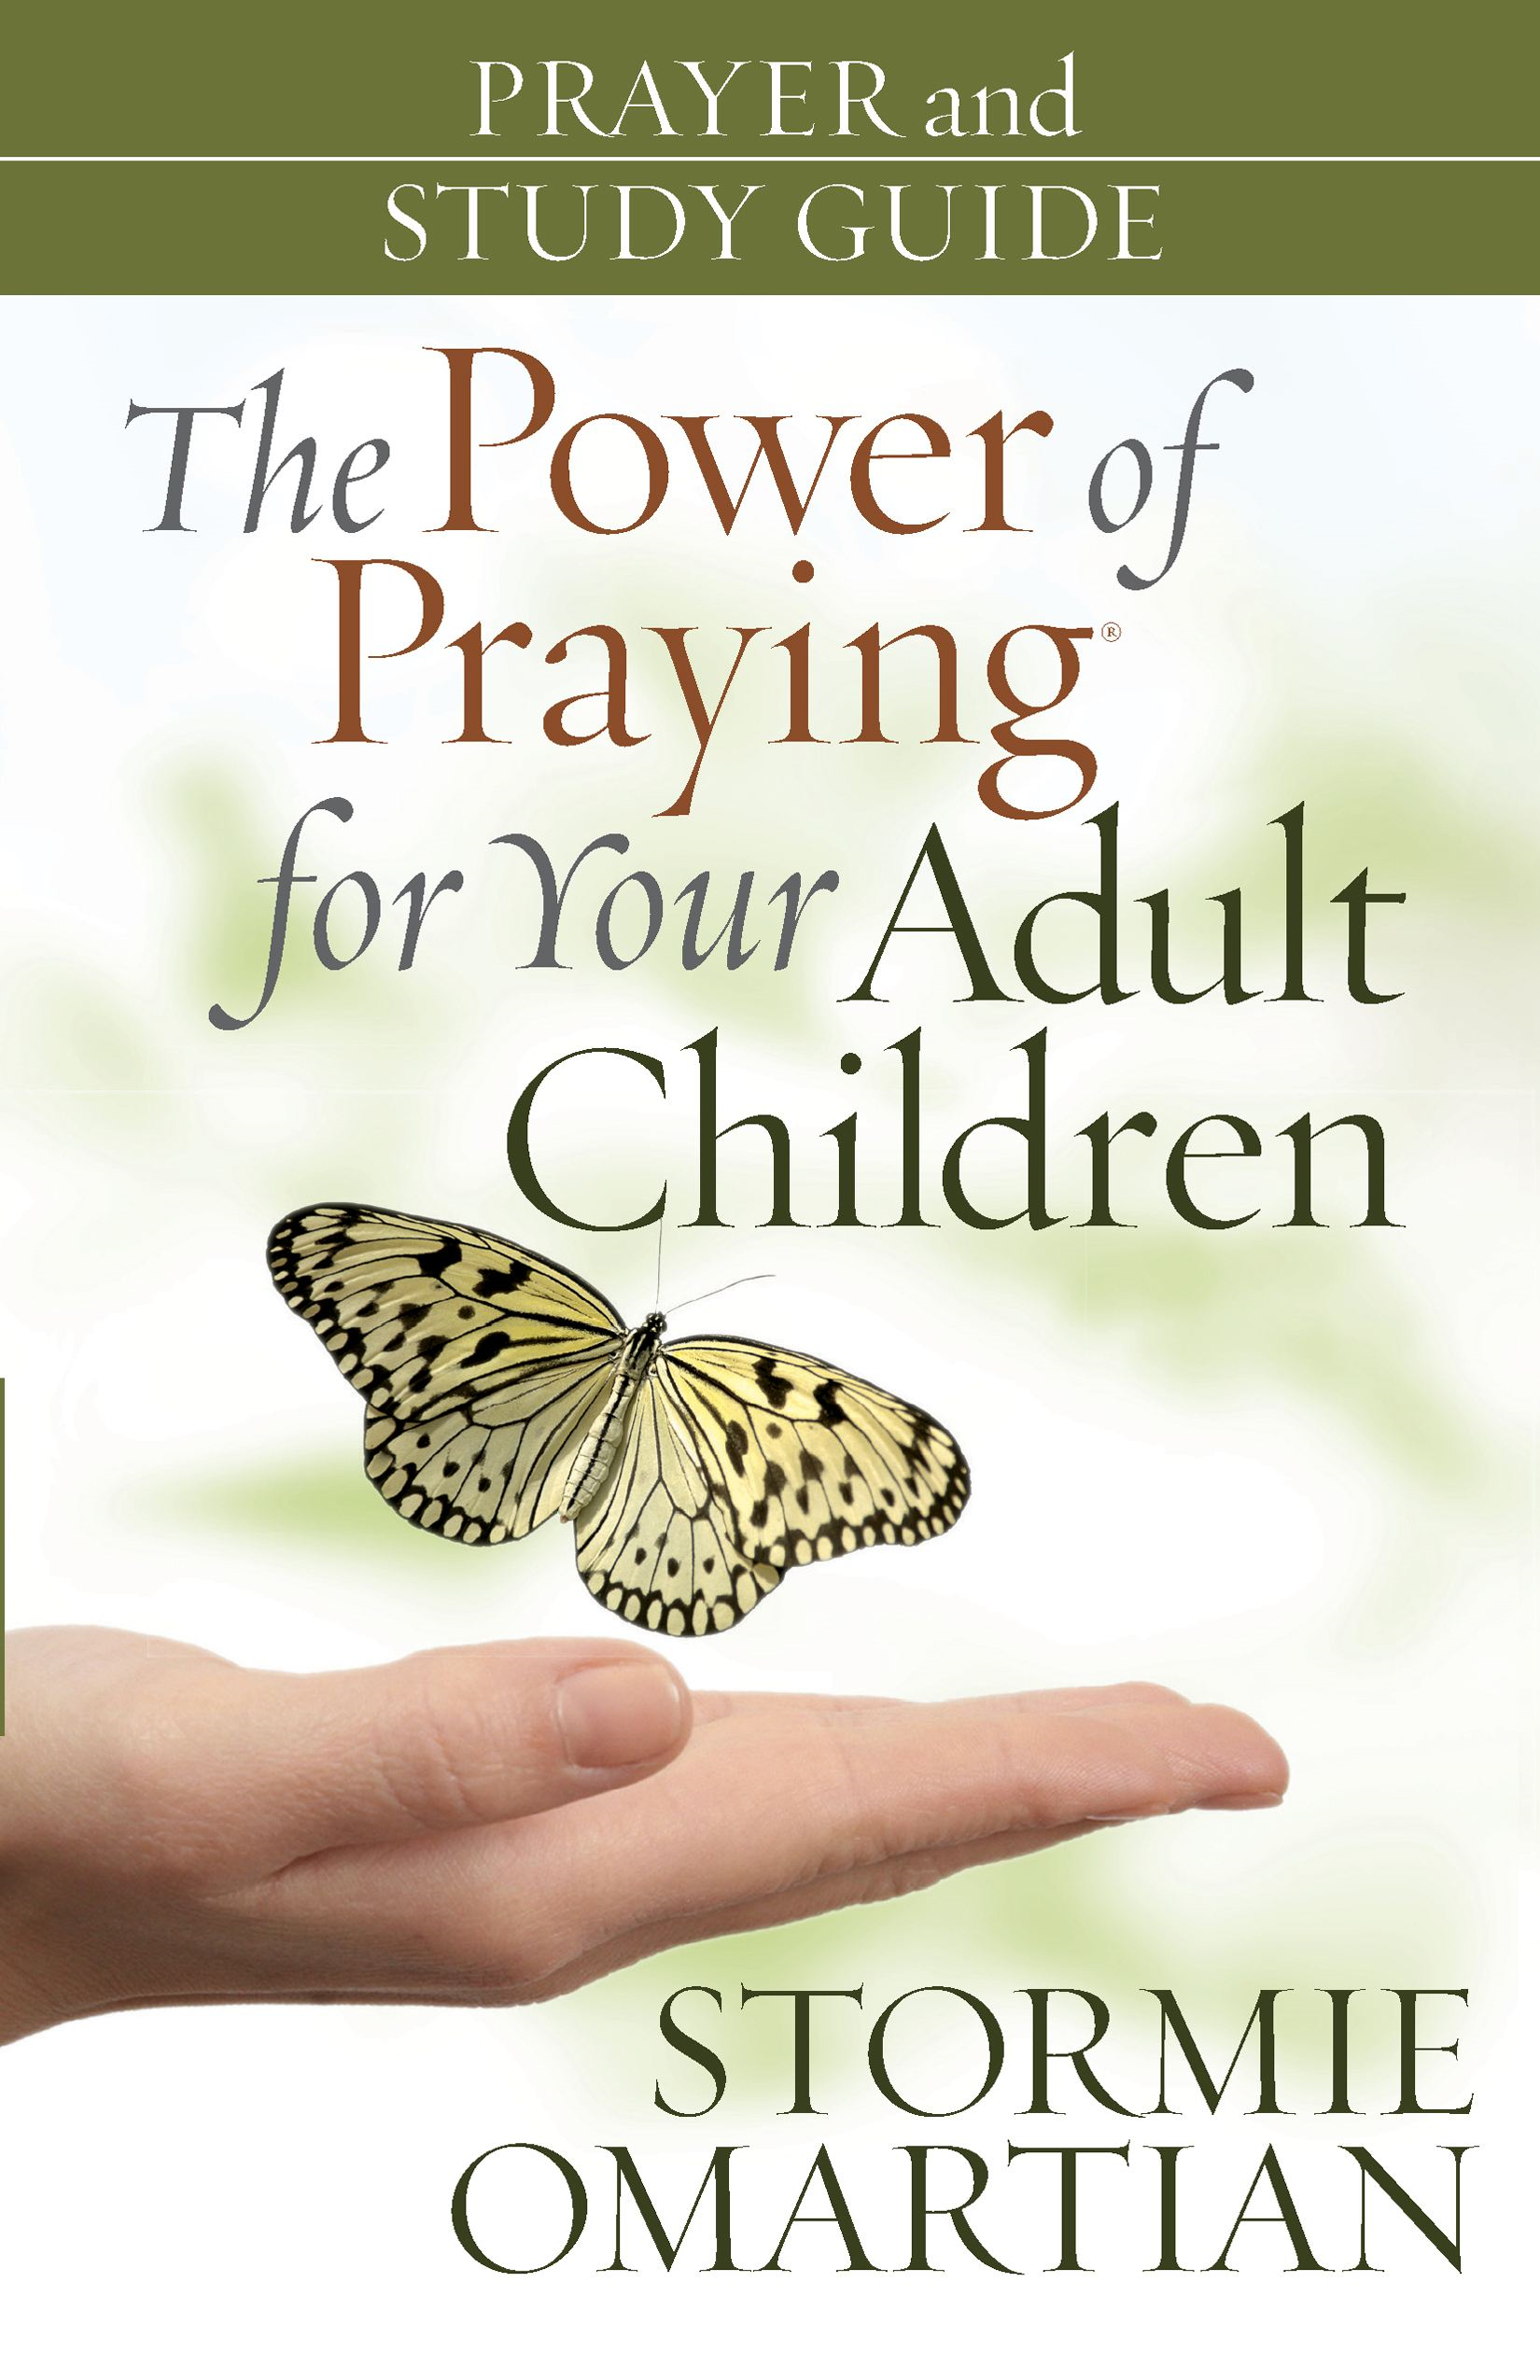 The Power of Praying® for Your Adult Children Prayer and Study Guide By: Stormie Omartian